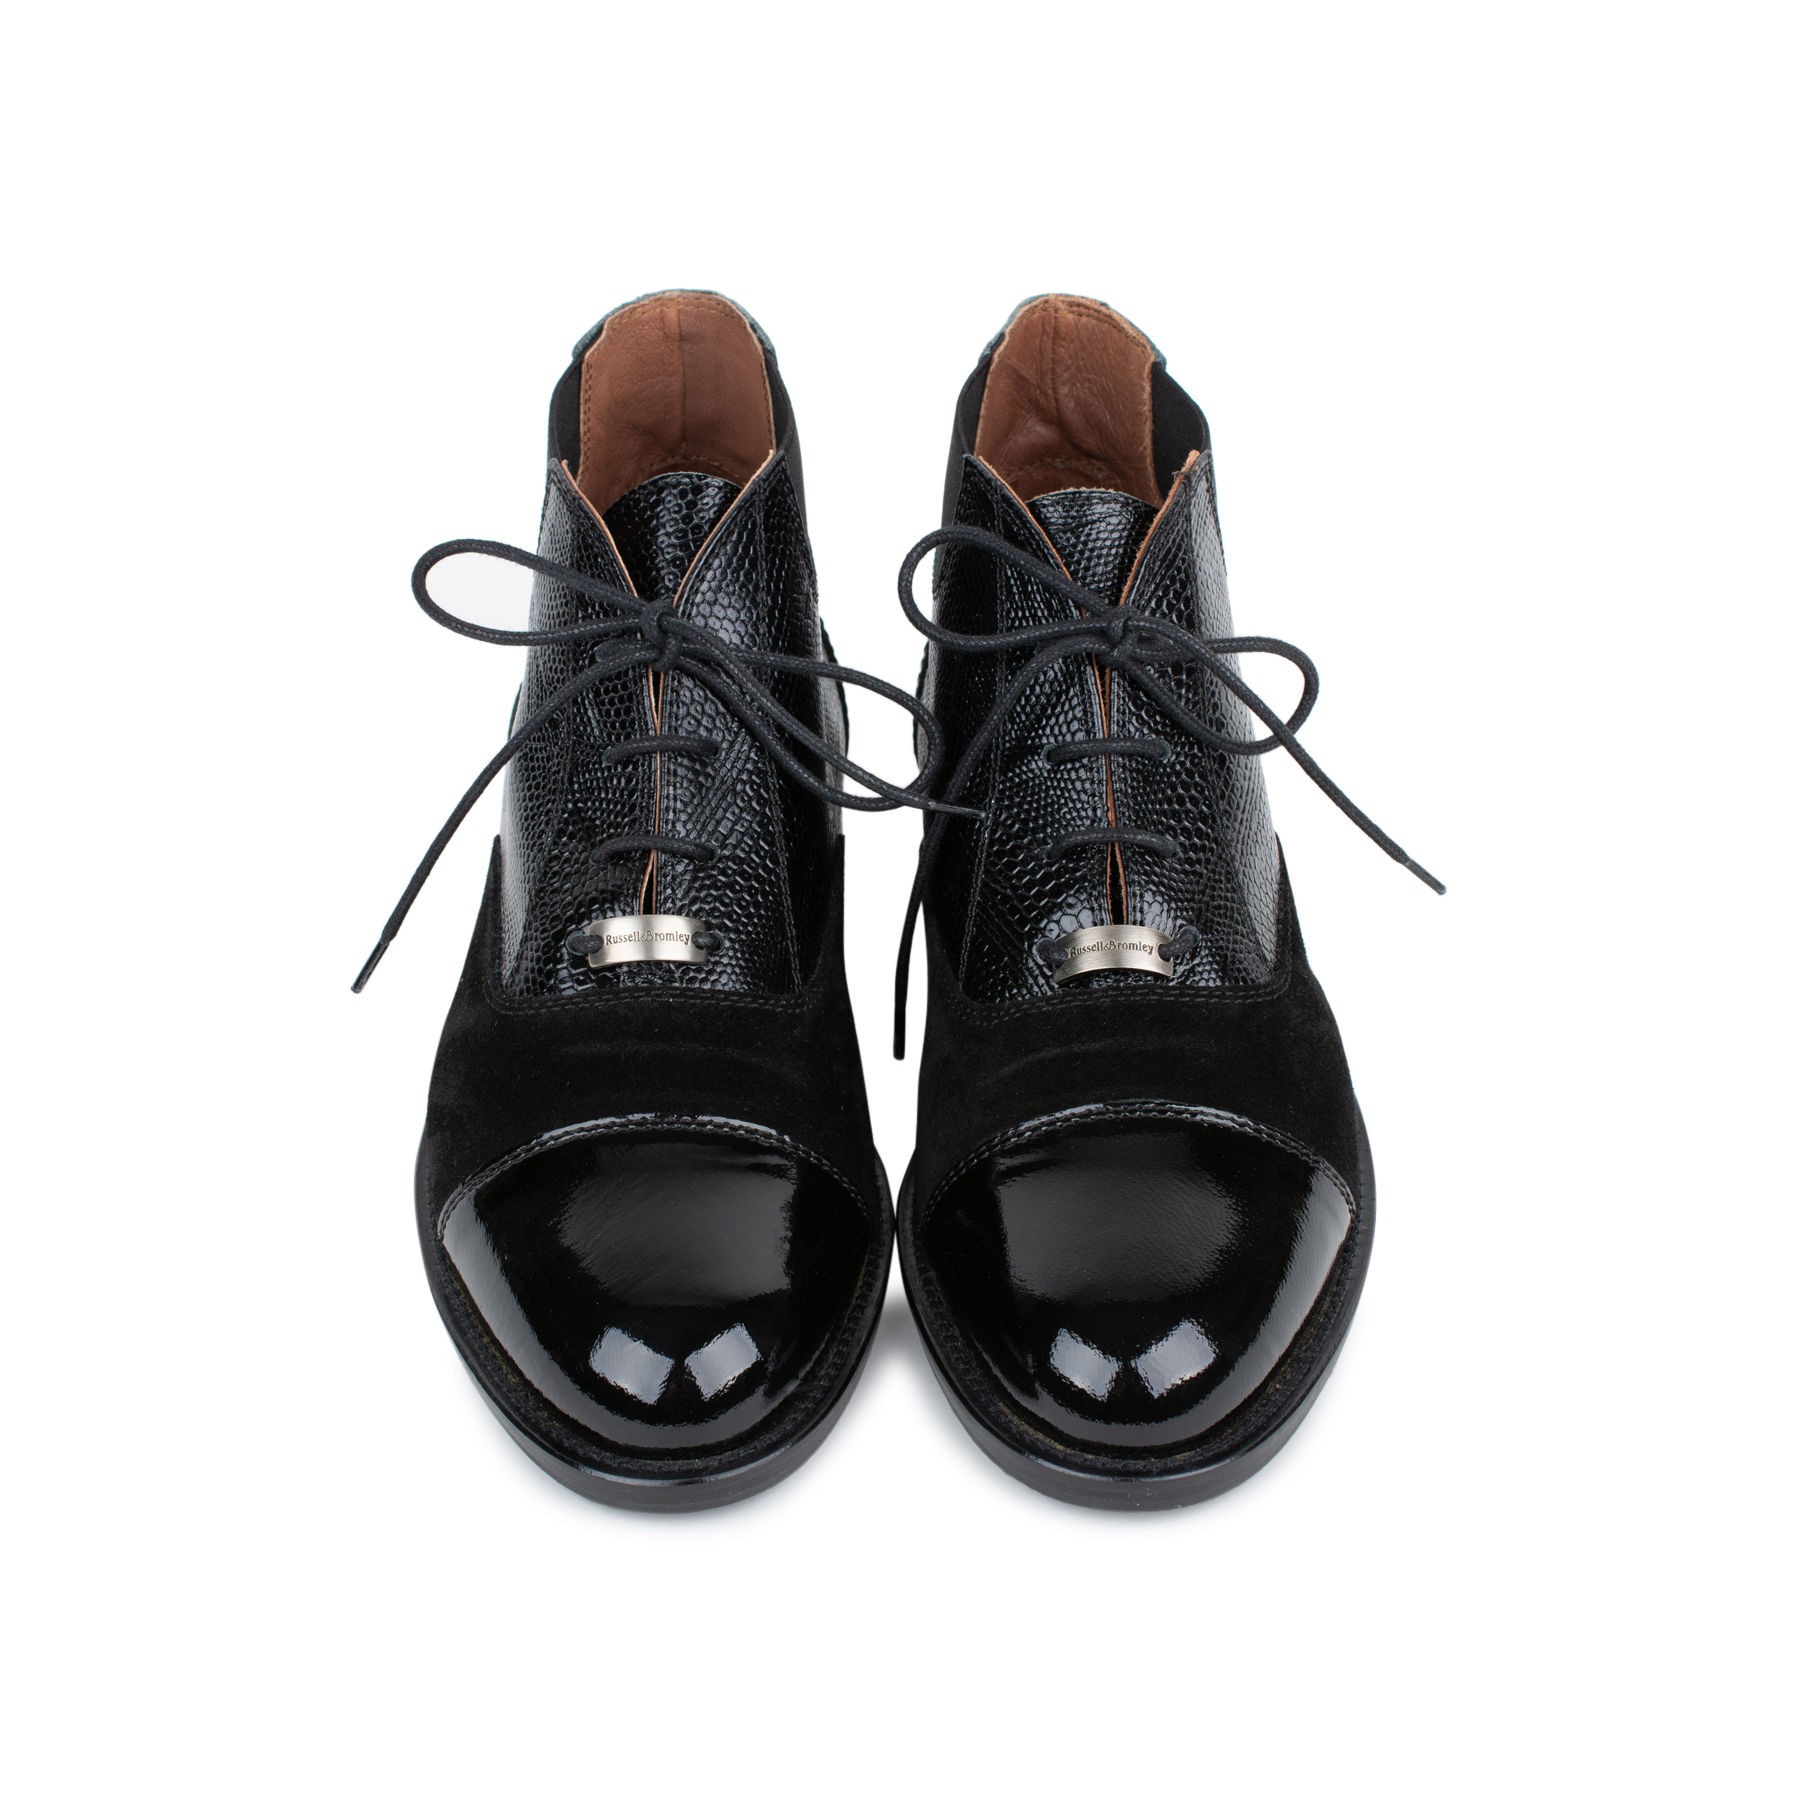 430aa2f4a97b Authentic Second Hand Russel And Bromley Berkley Lace-up Ankle Boot  (PSS-145-00200)